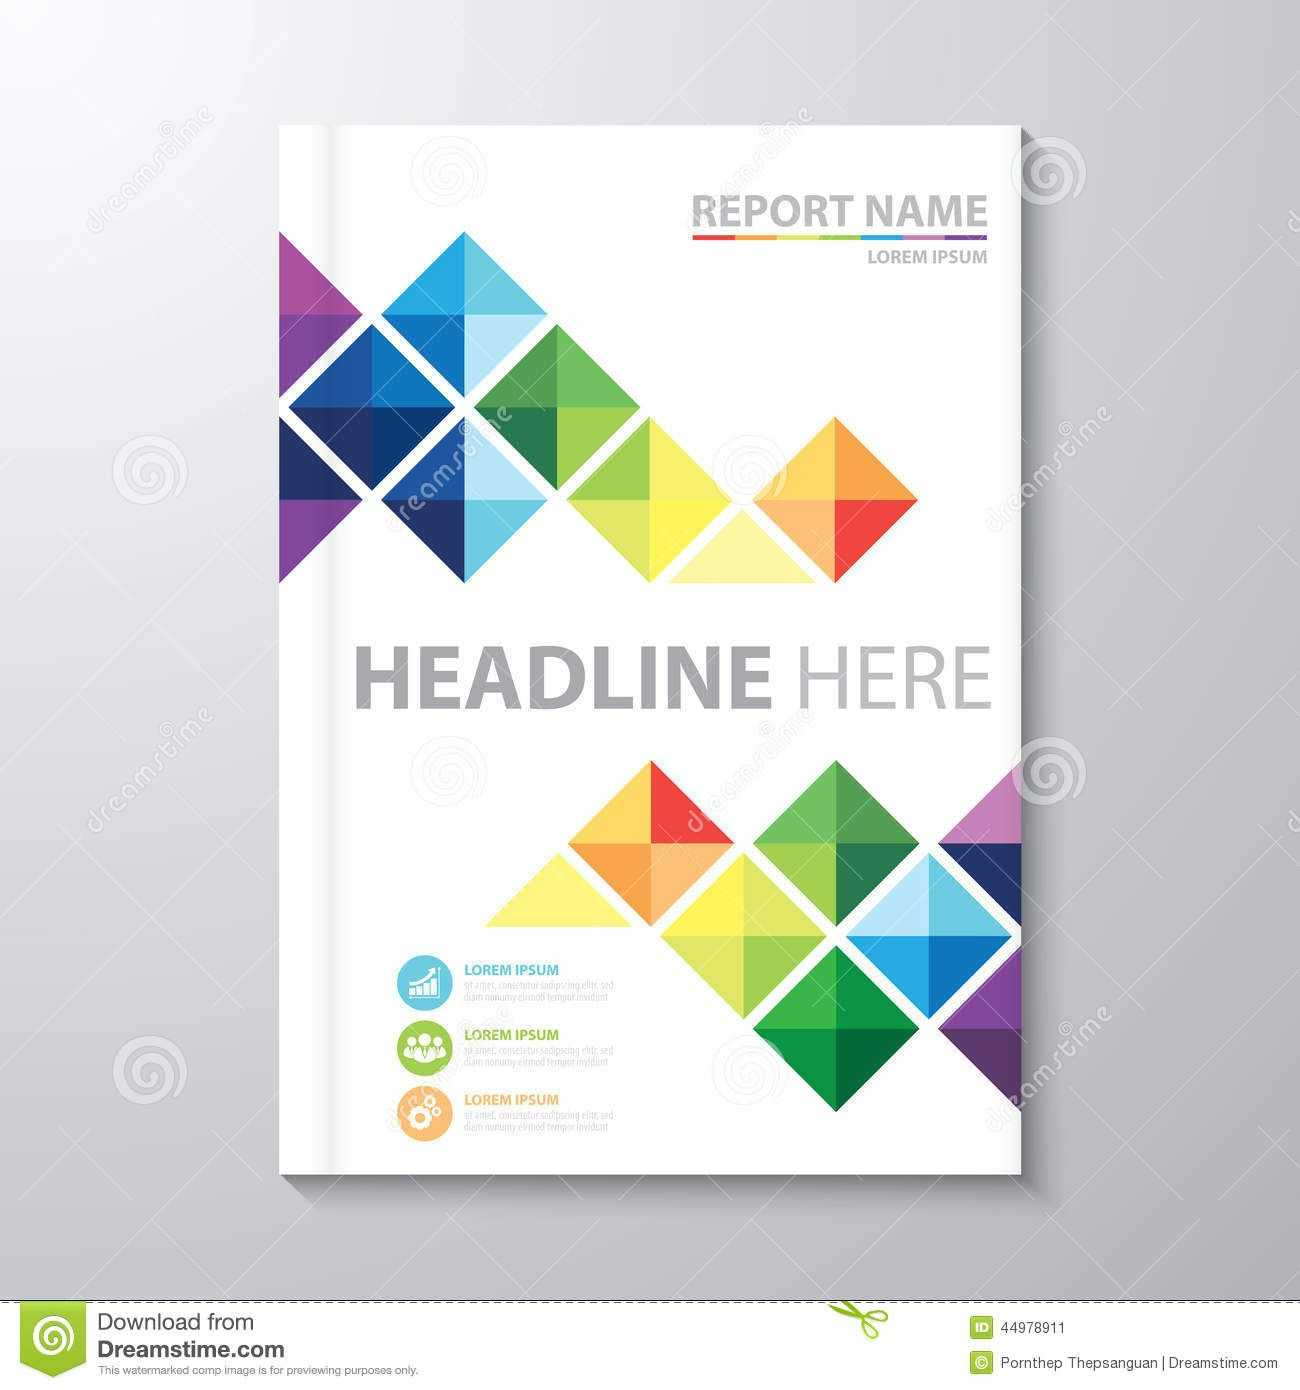 008 Word Cover Pages Templates Template Ideas Magnificent In Cover Pages For Word Templates